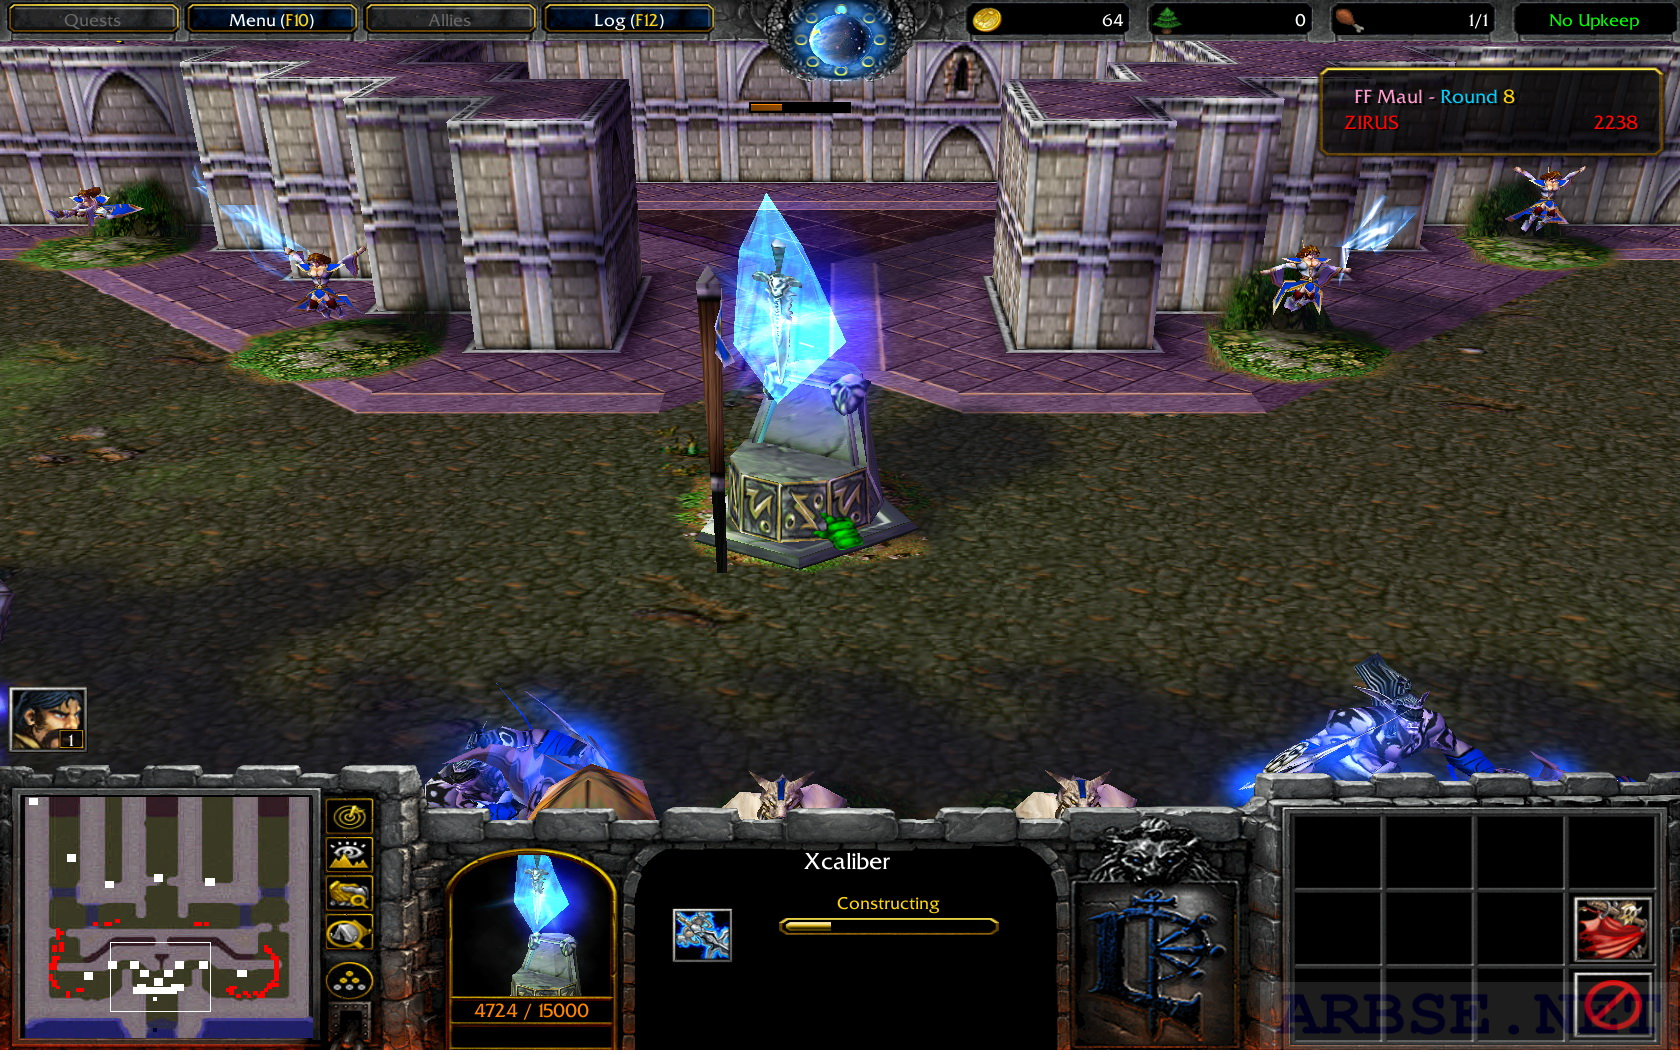 Warcraft 3 sex maul map hentai download